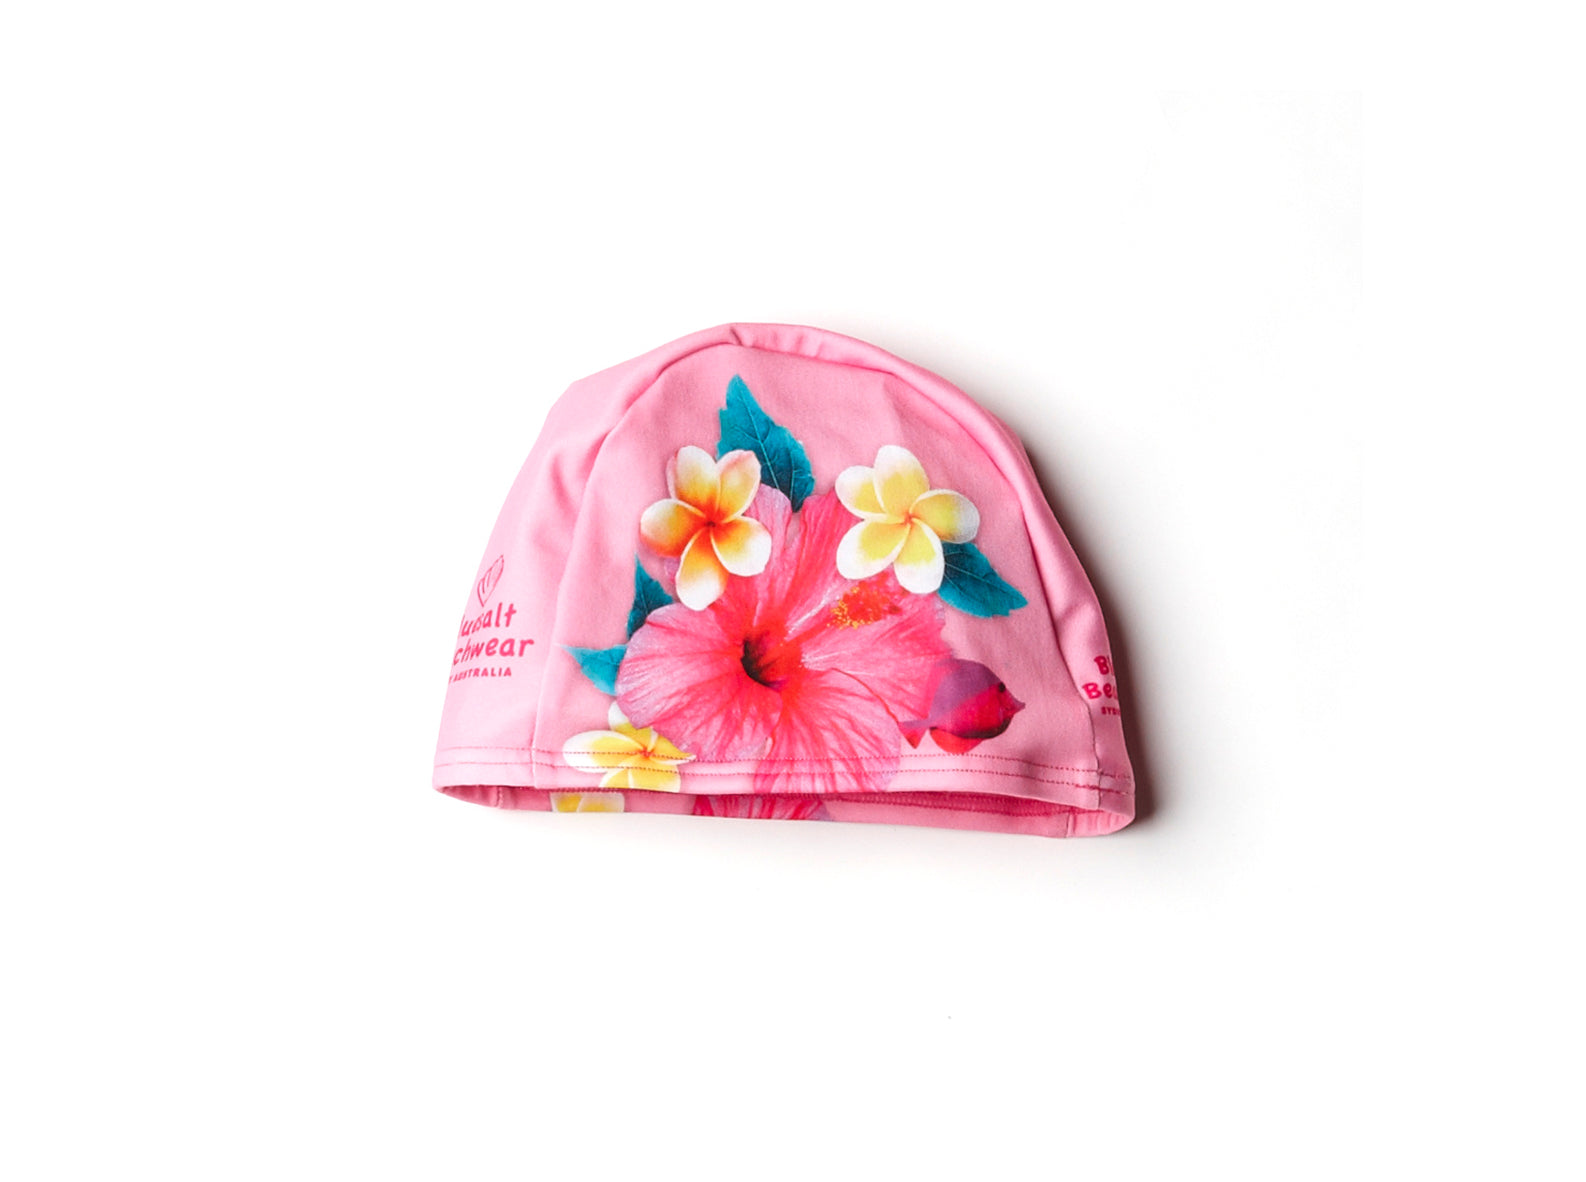 Mermaid Swim Cap